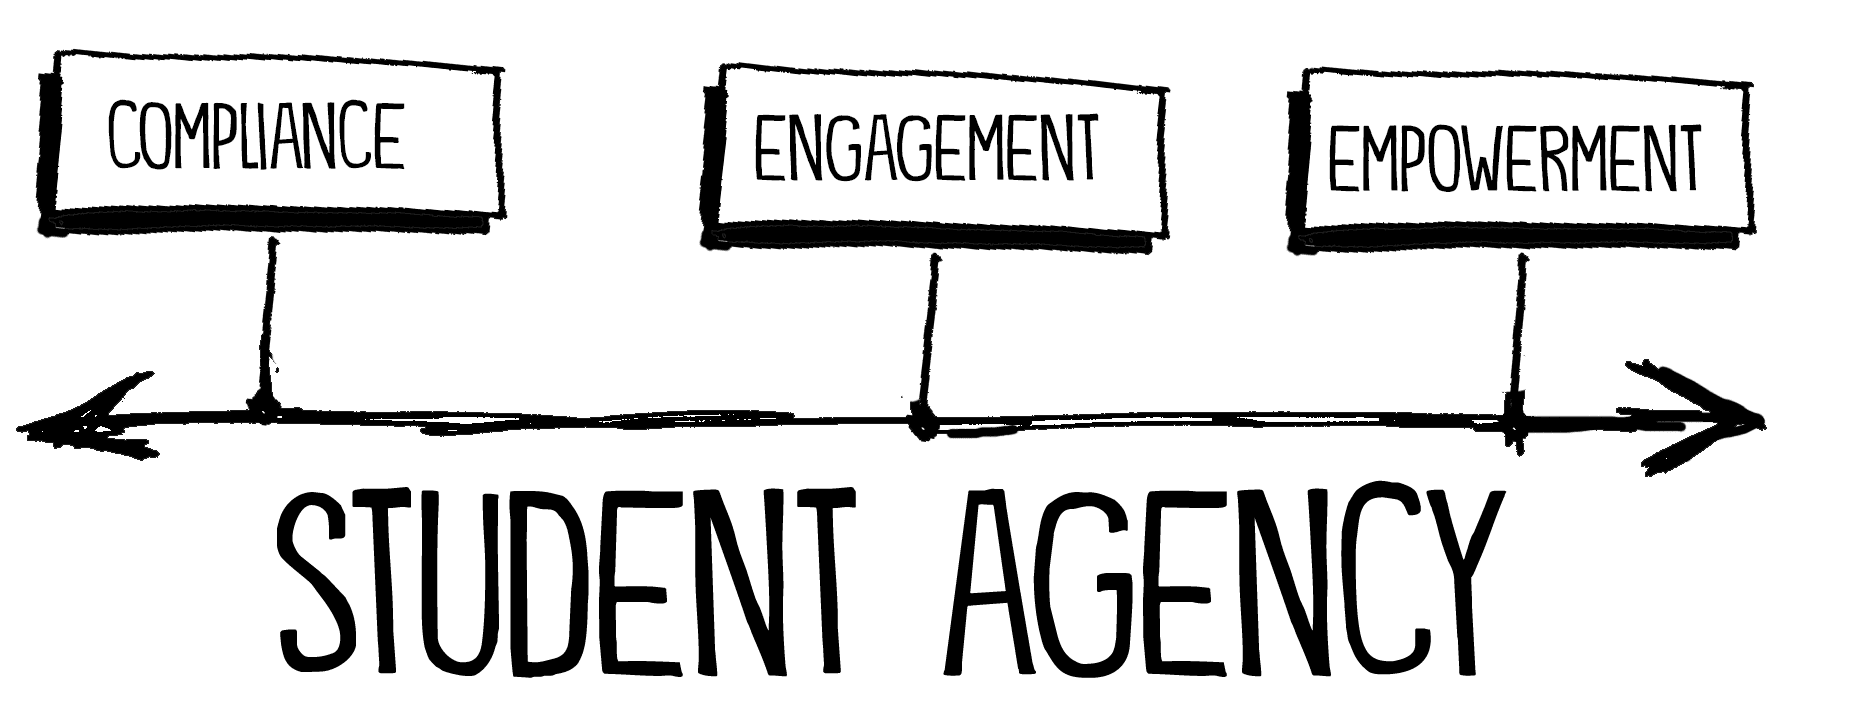 student-agency-continuum